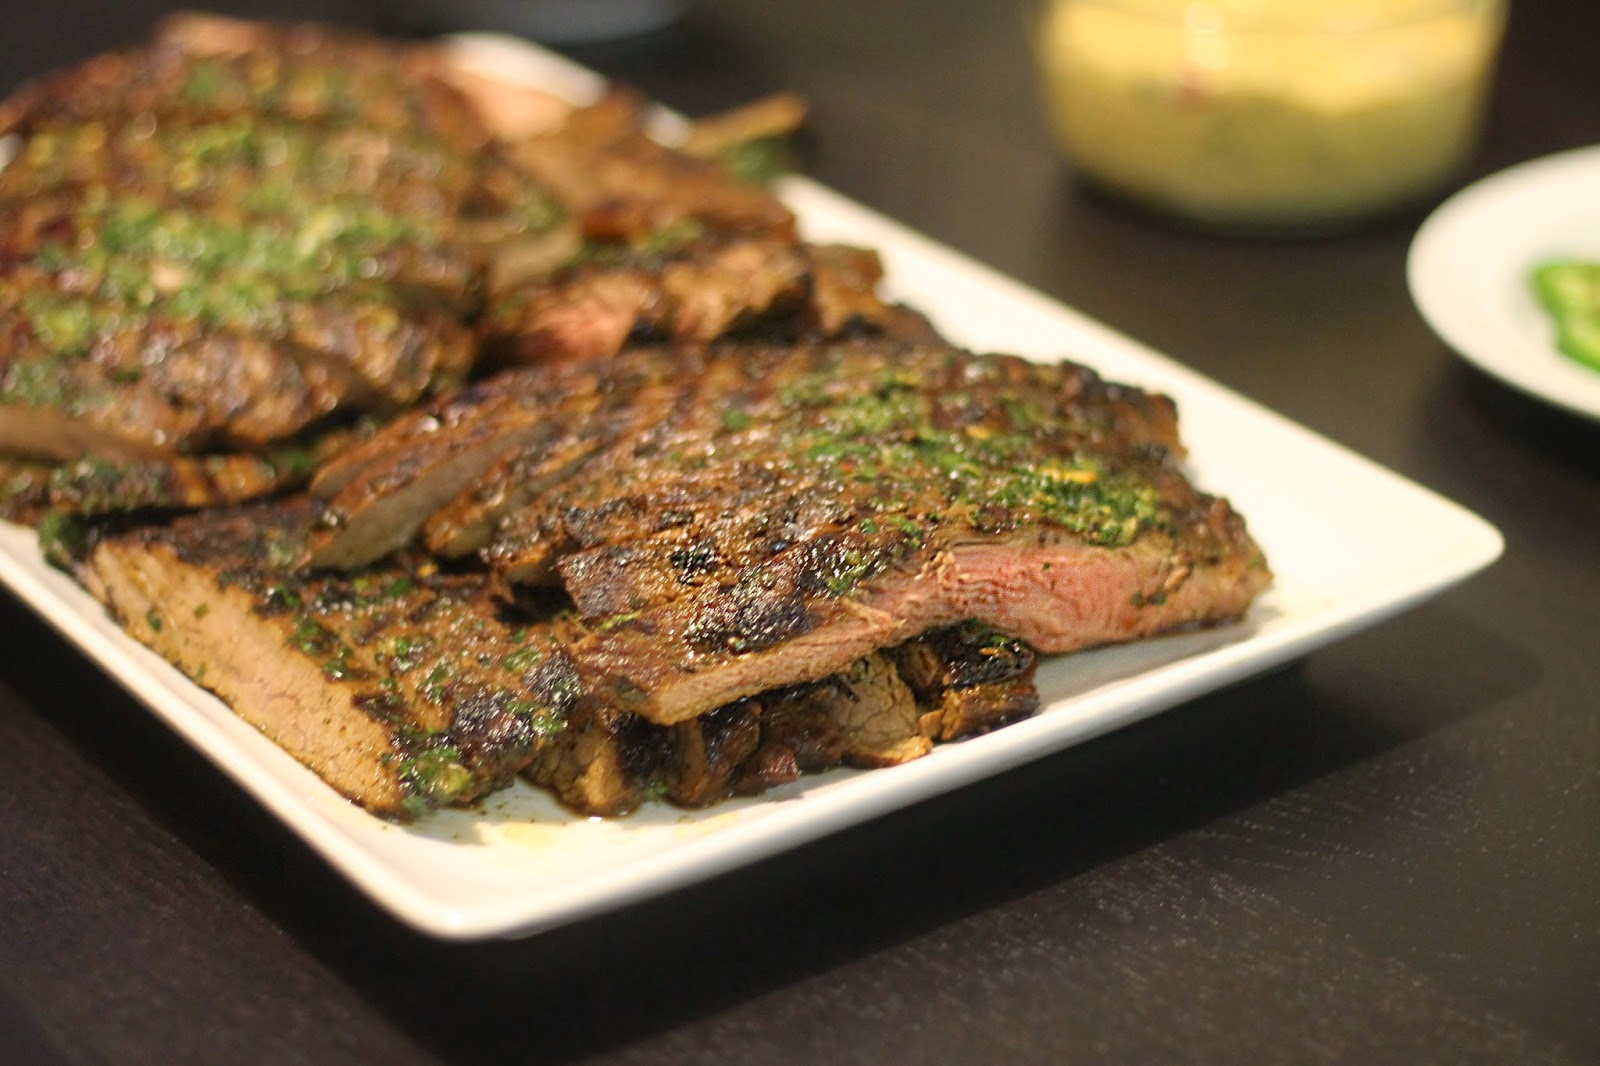 millennial central beef checkoff -- carne asada and tex-mex beef party #sponsored #mc